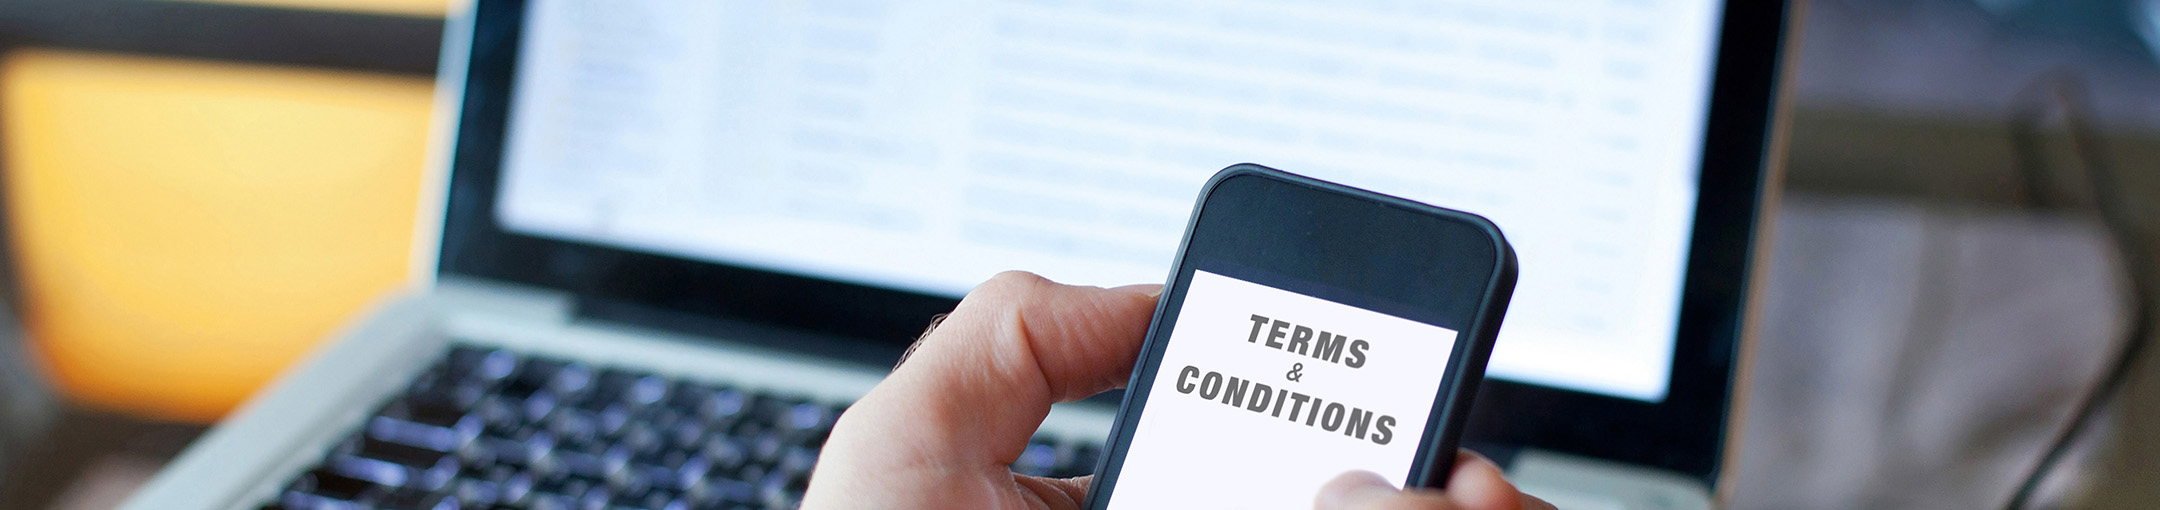 hands hold a cell phone with Terms & Conditions in front of a laptop